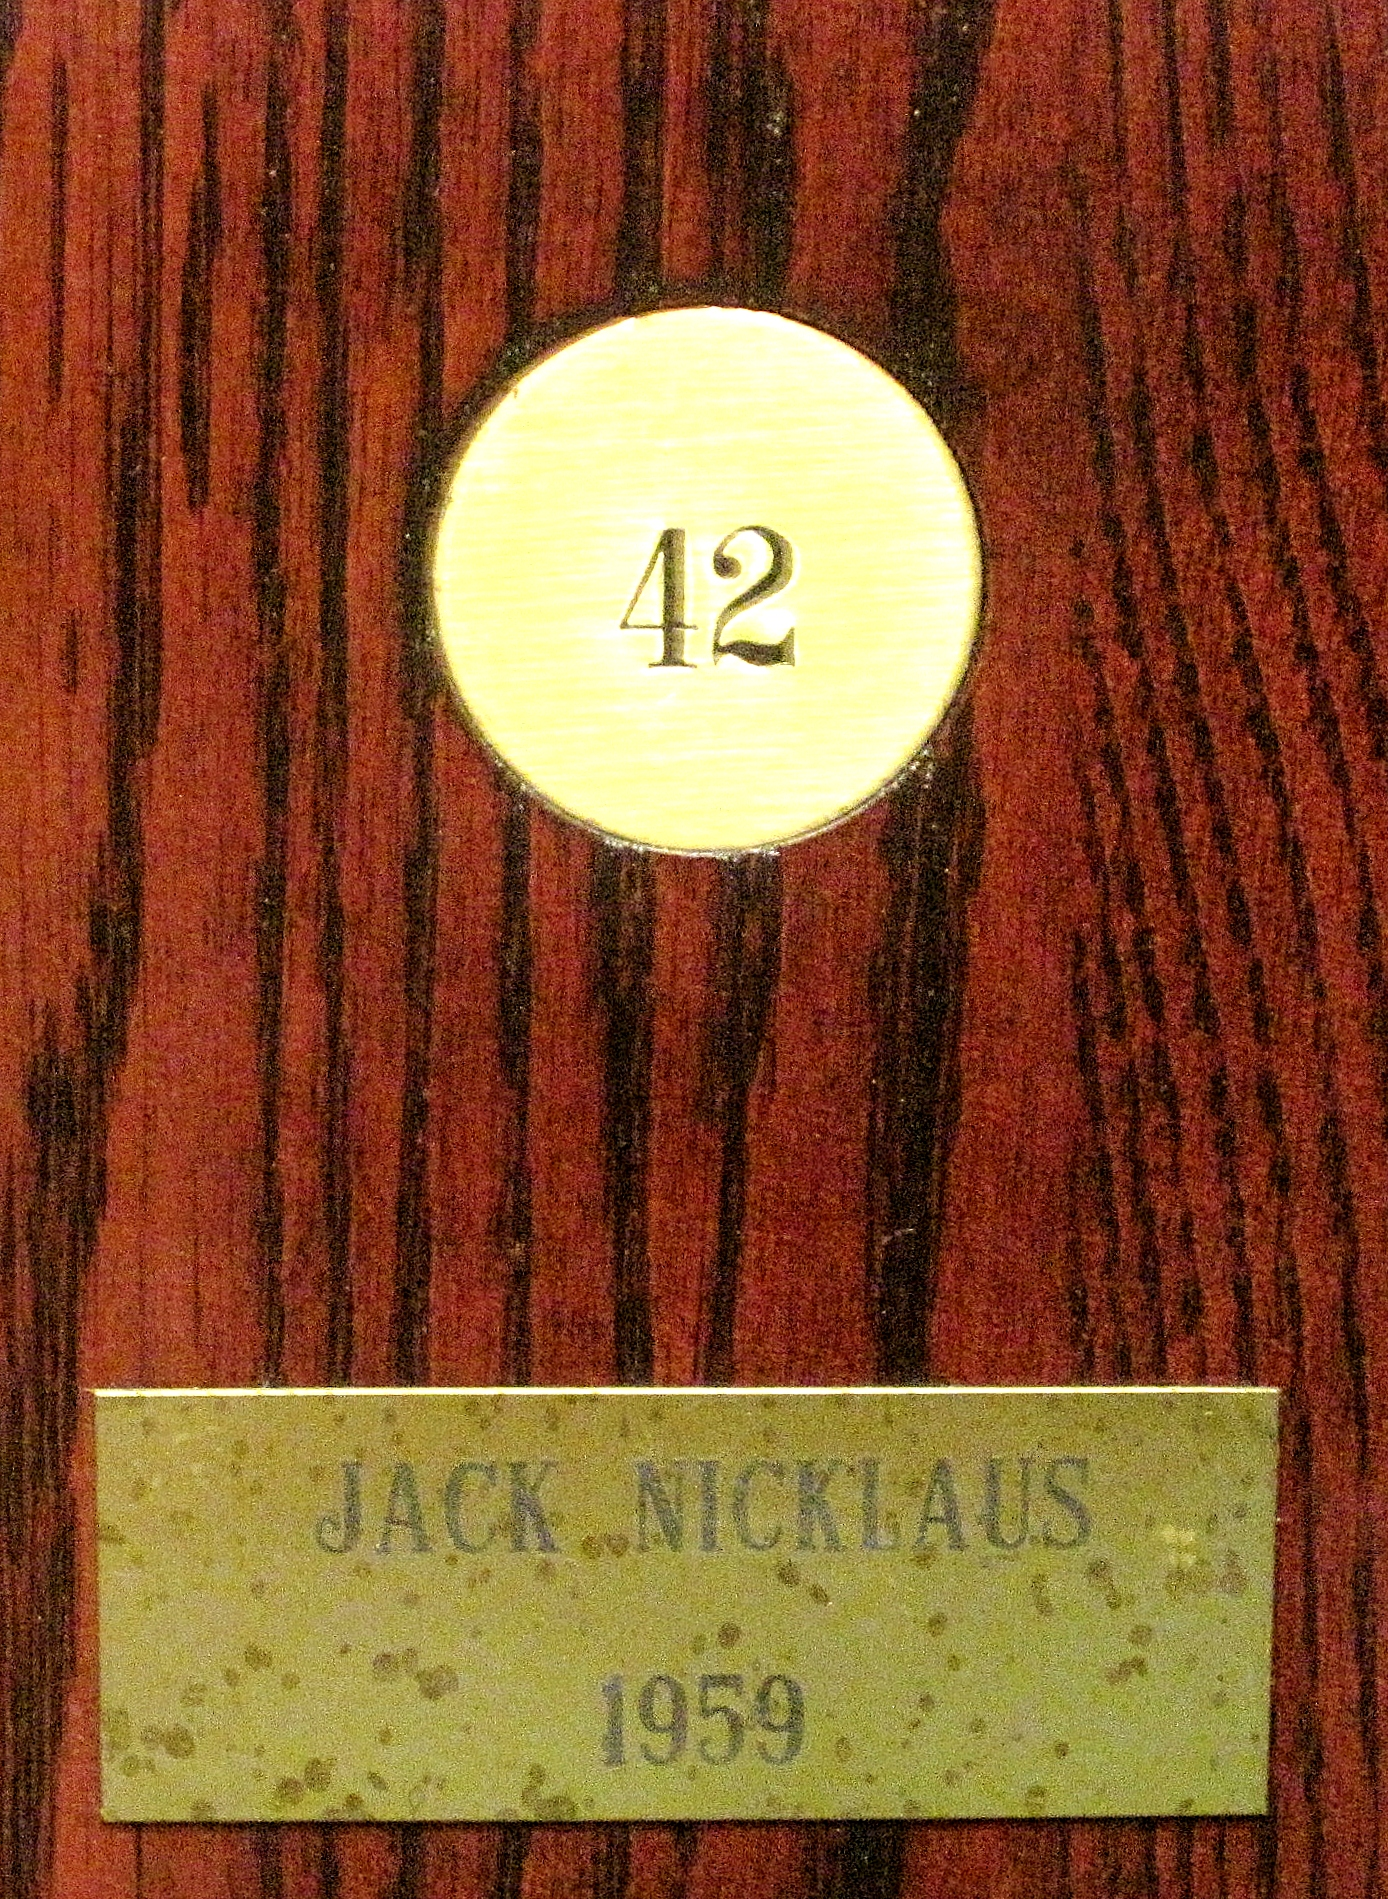 Jack Nicklaus' locker in the North and South Locker Room at Pinehurst.